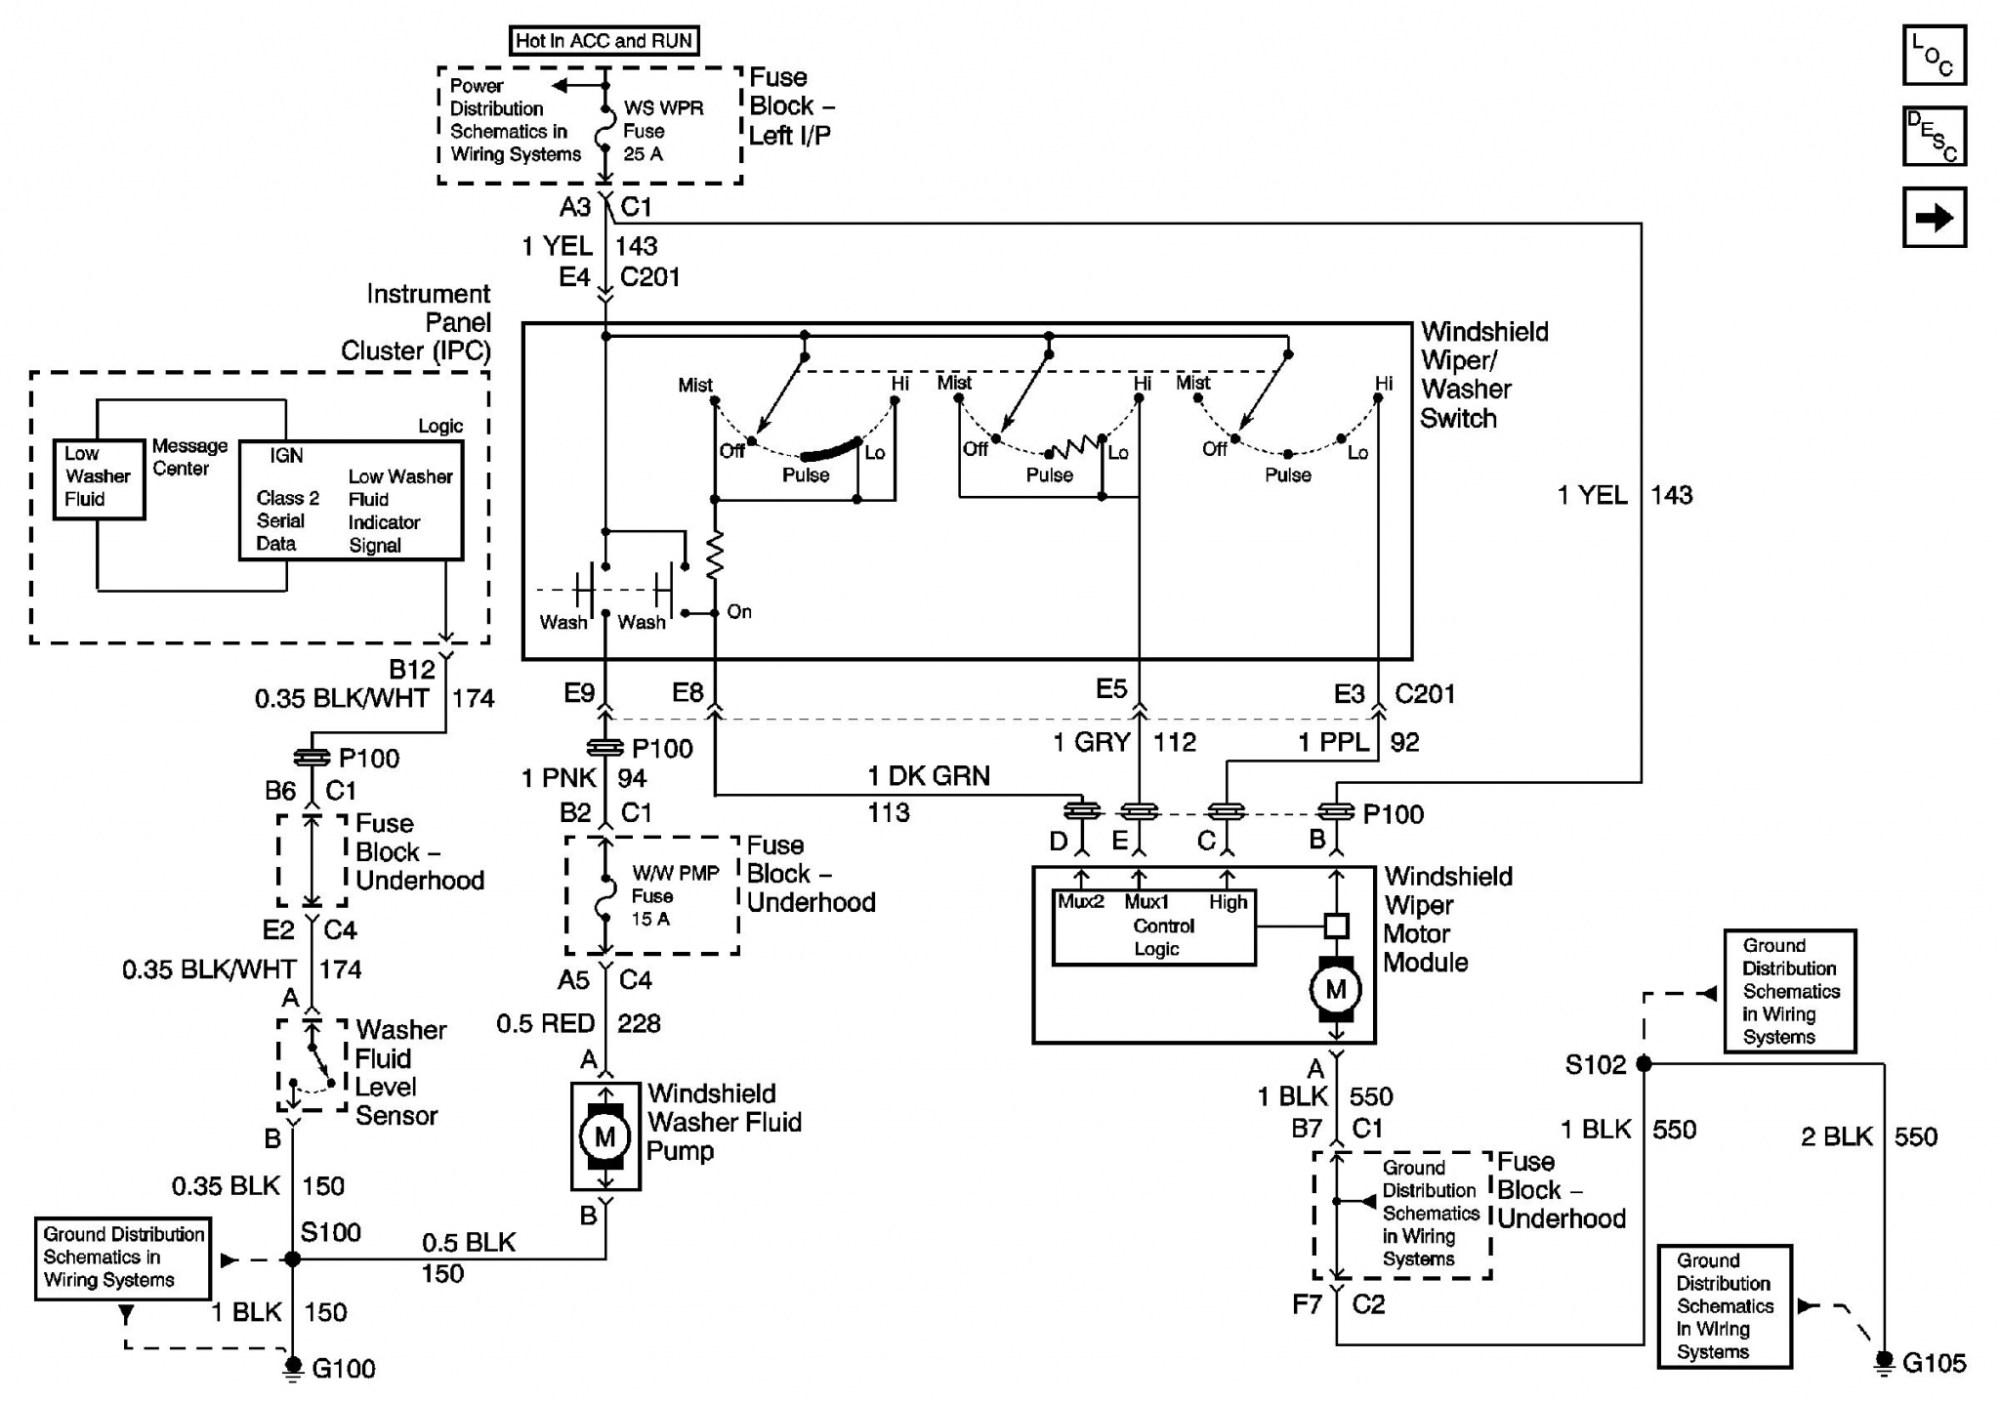 hight resolution of 2002 wiper schematic click pic to expand it